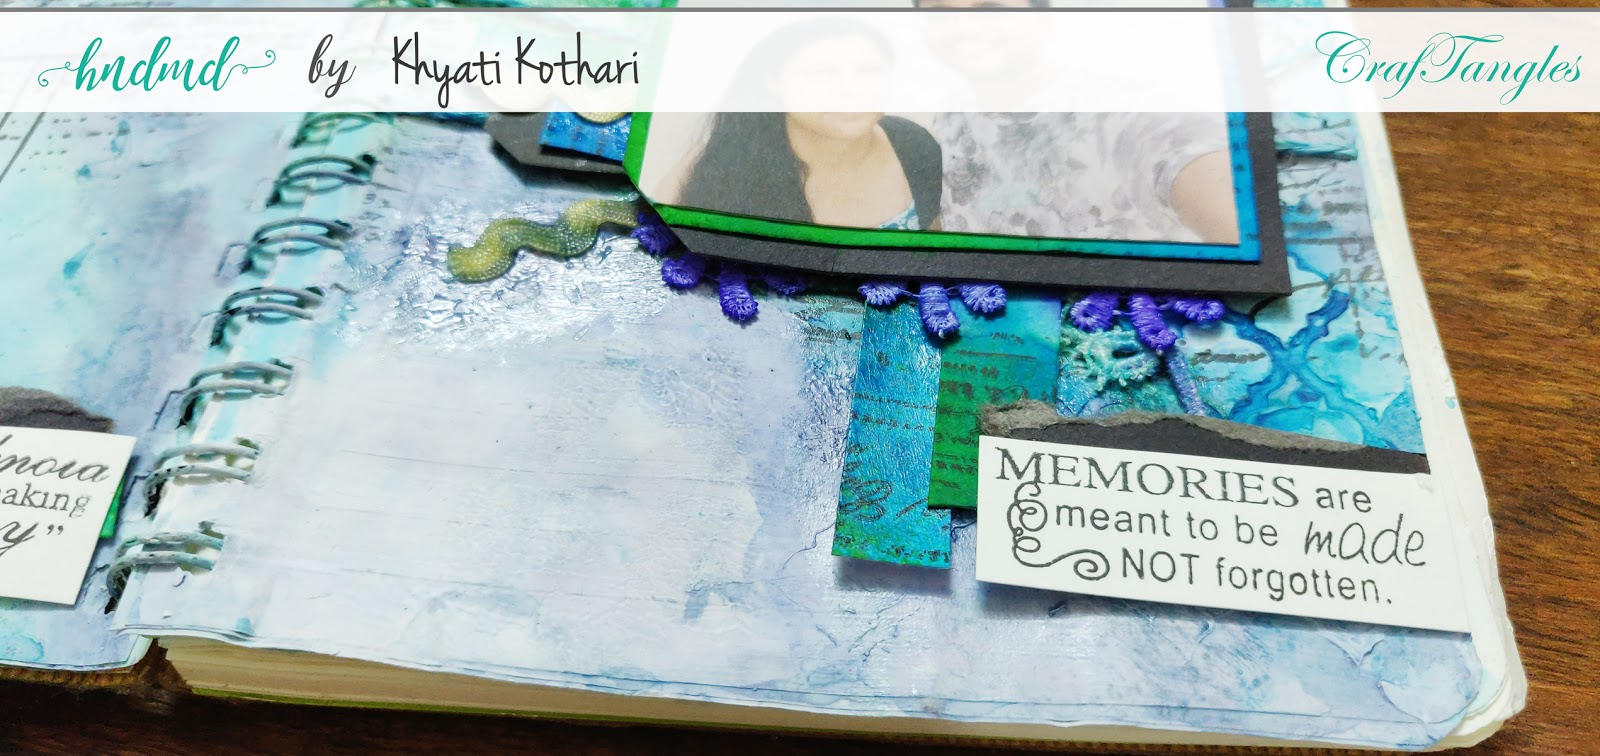 First attempt at Art Journal page using CrafTangles products 4